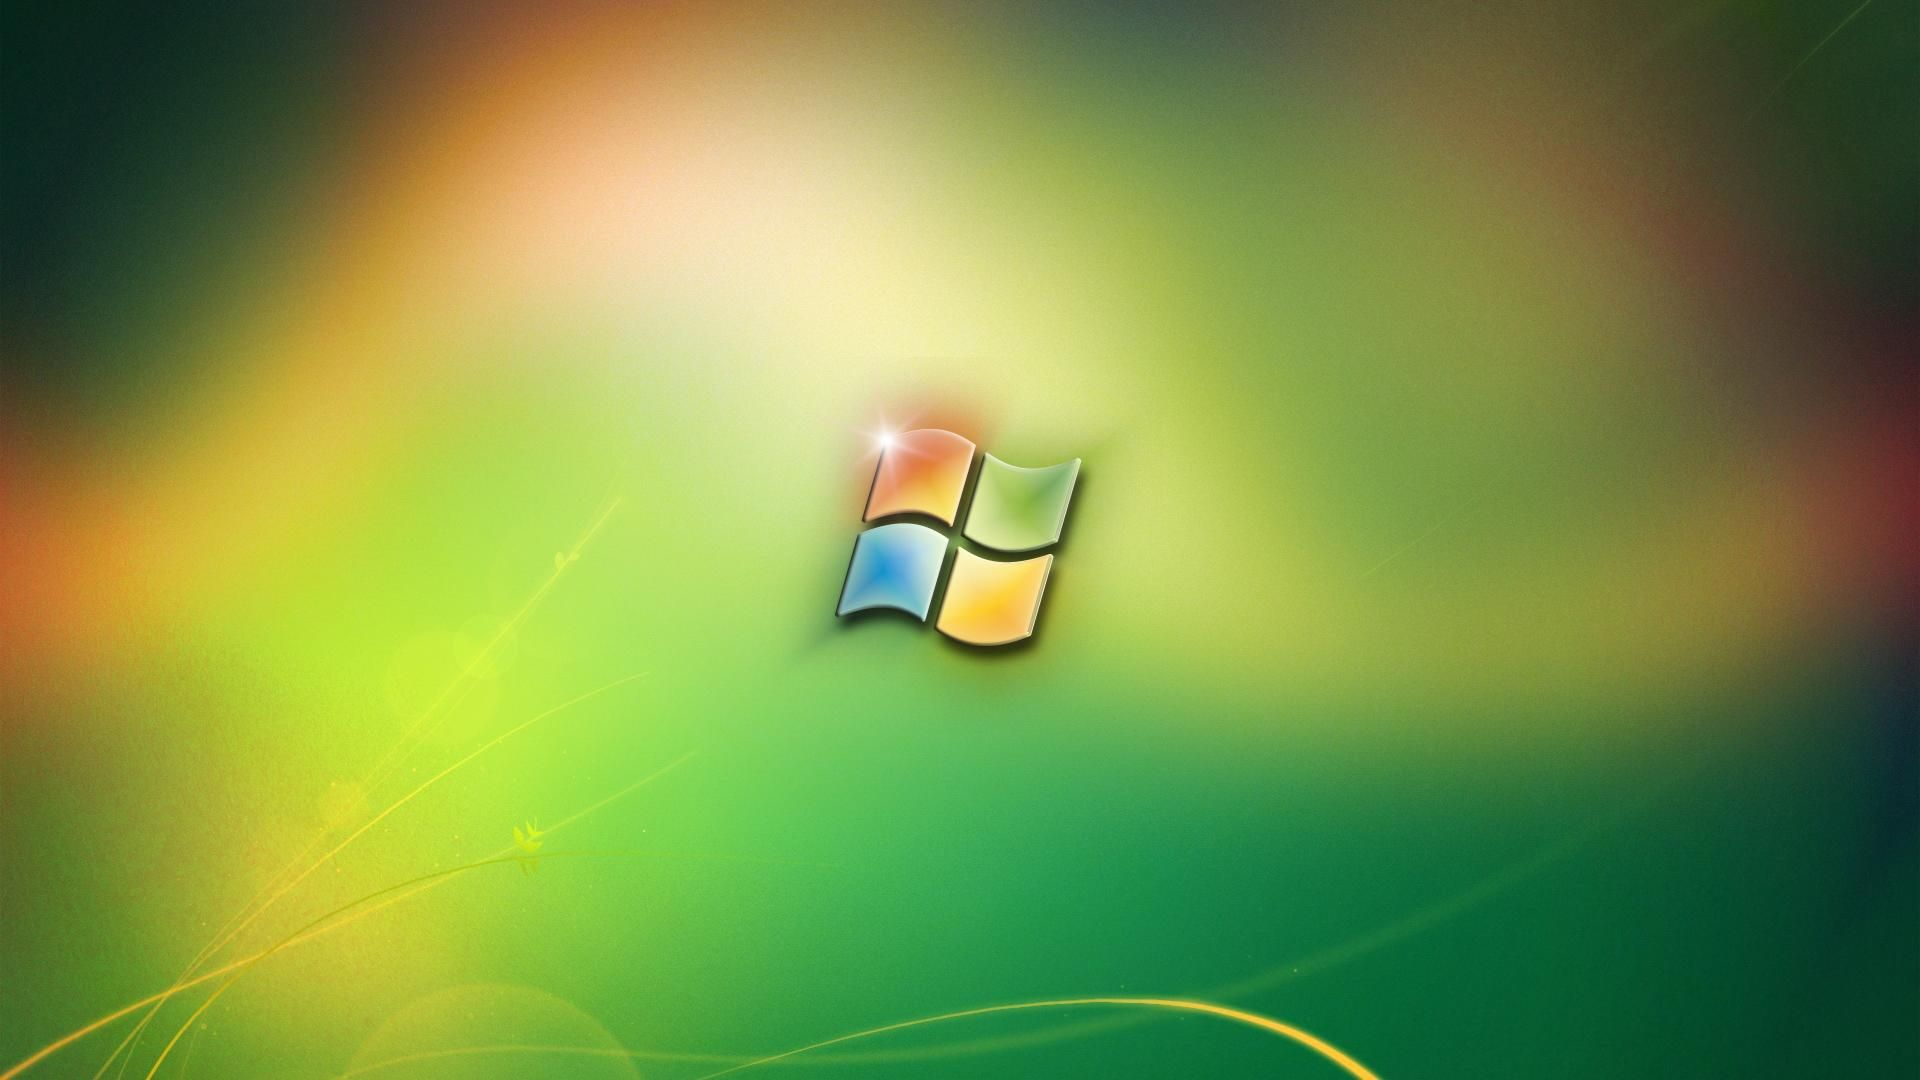 full hd p windows wallpapers hd desktop backgrounds a— hd